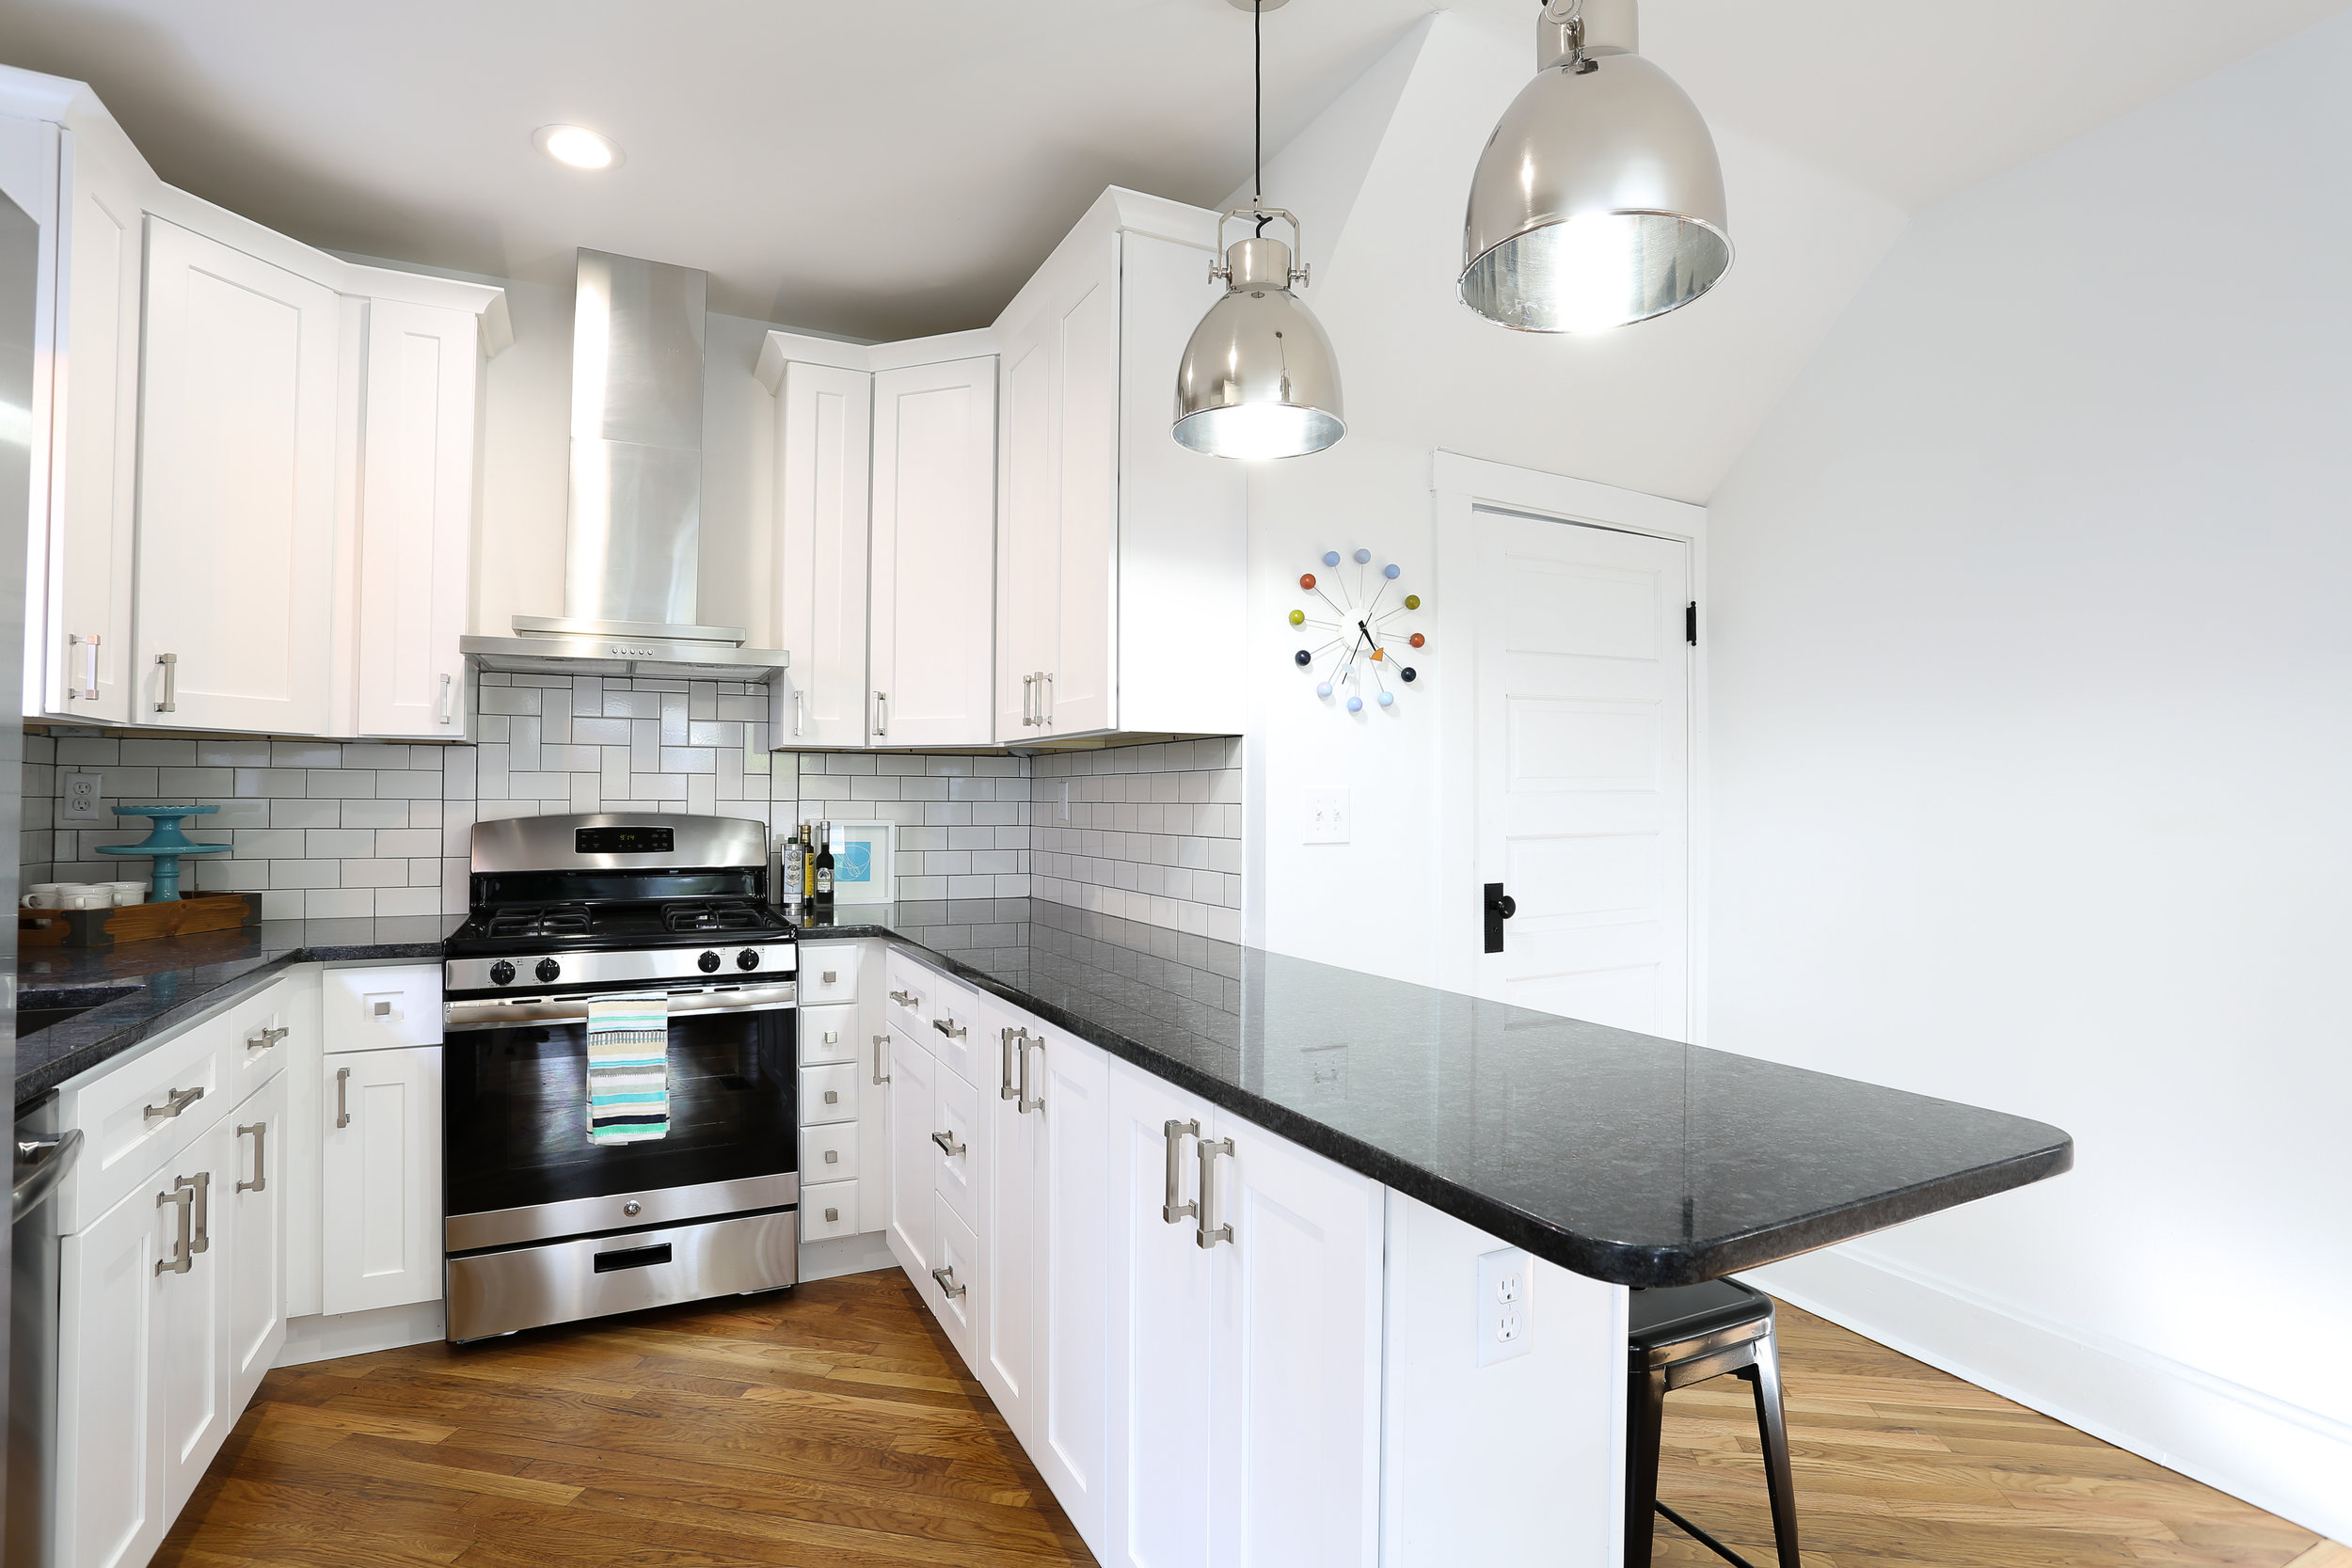 Schoolhouse industrial black and white kitchen with herringbone subway tile